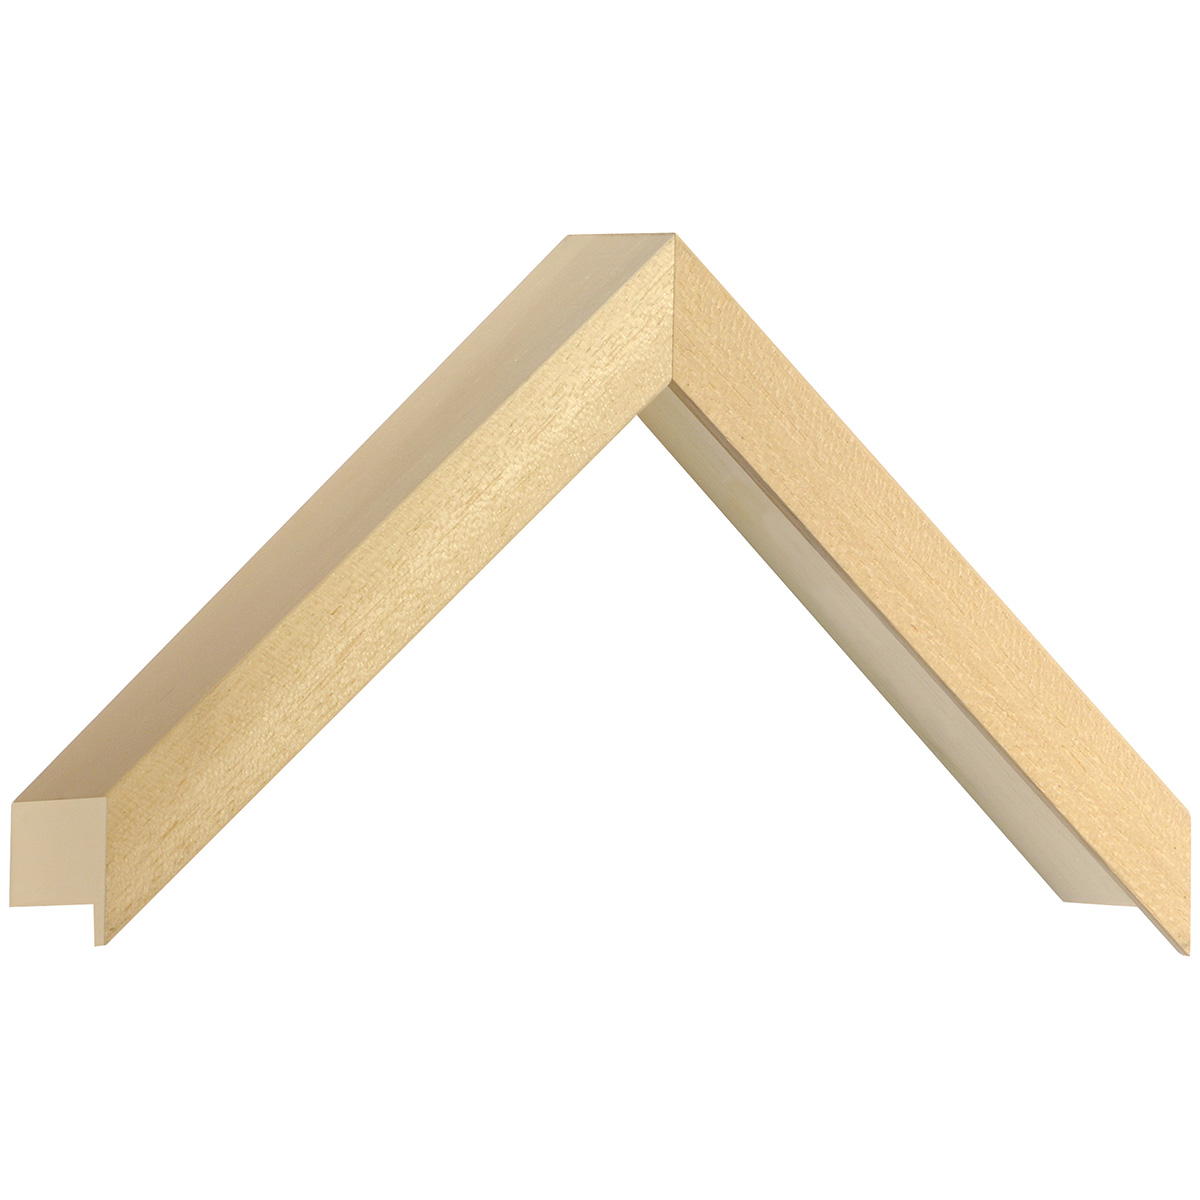 Moulding ayous, width 20mm, height 55mm, bare timber